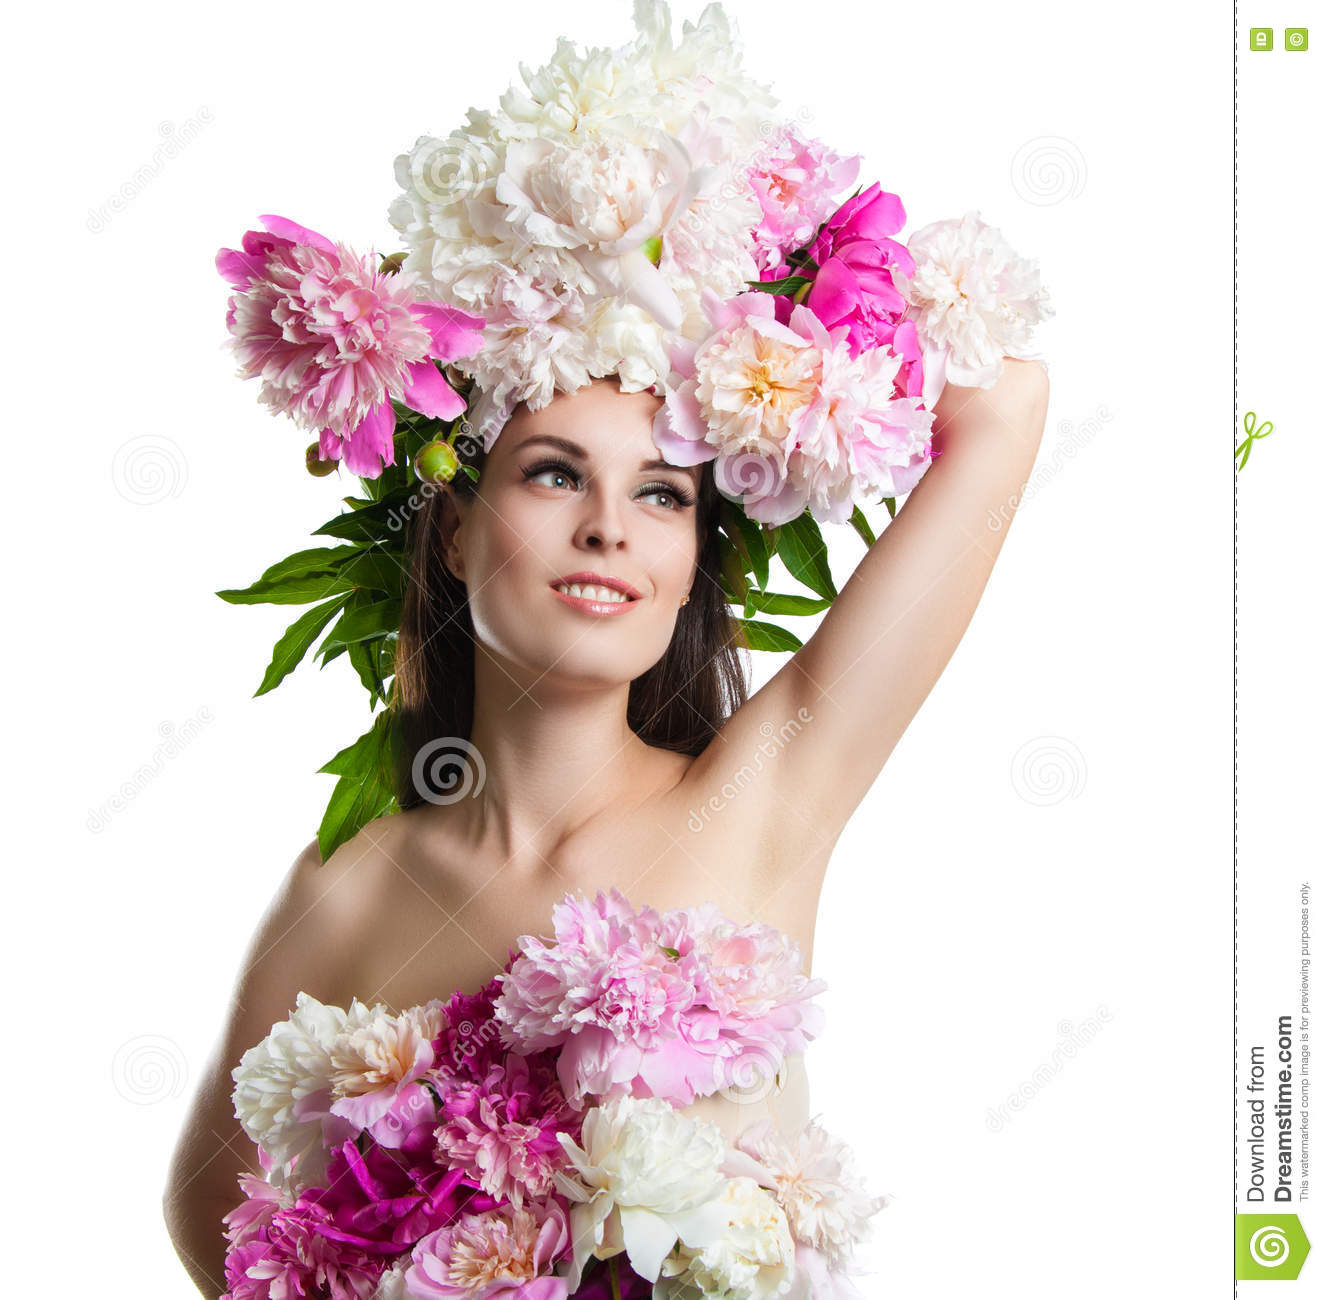 Beautiful girl with flowers peonies portrait of a young woman beautiful dress flowers dhlflorist Gallery